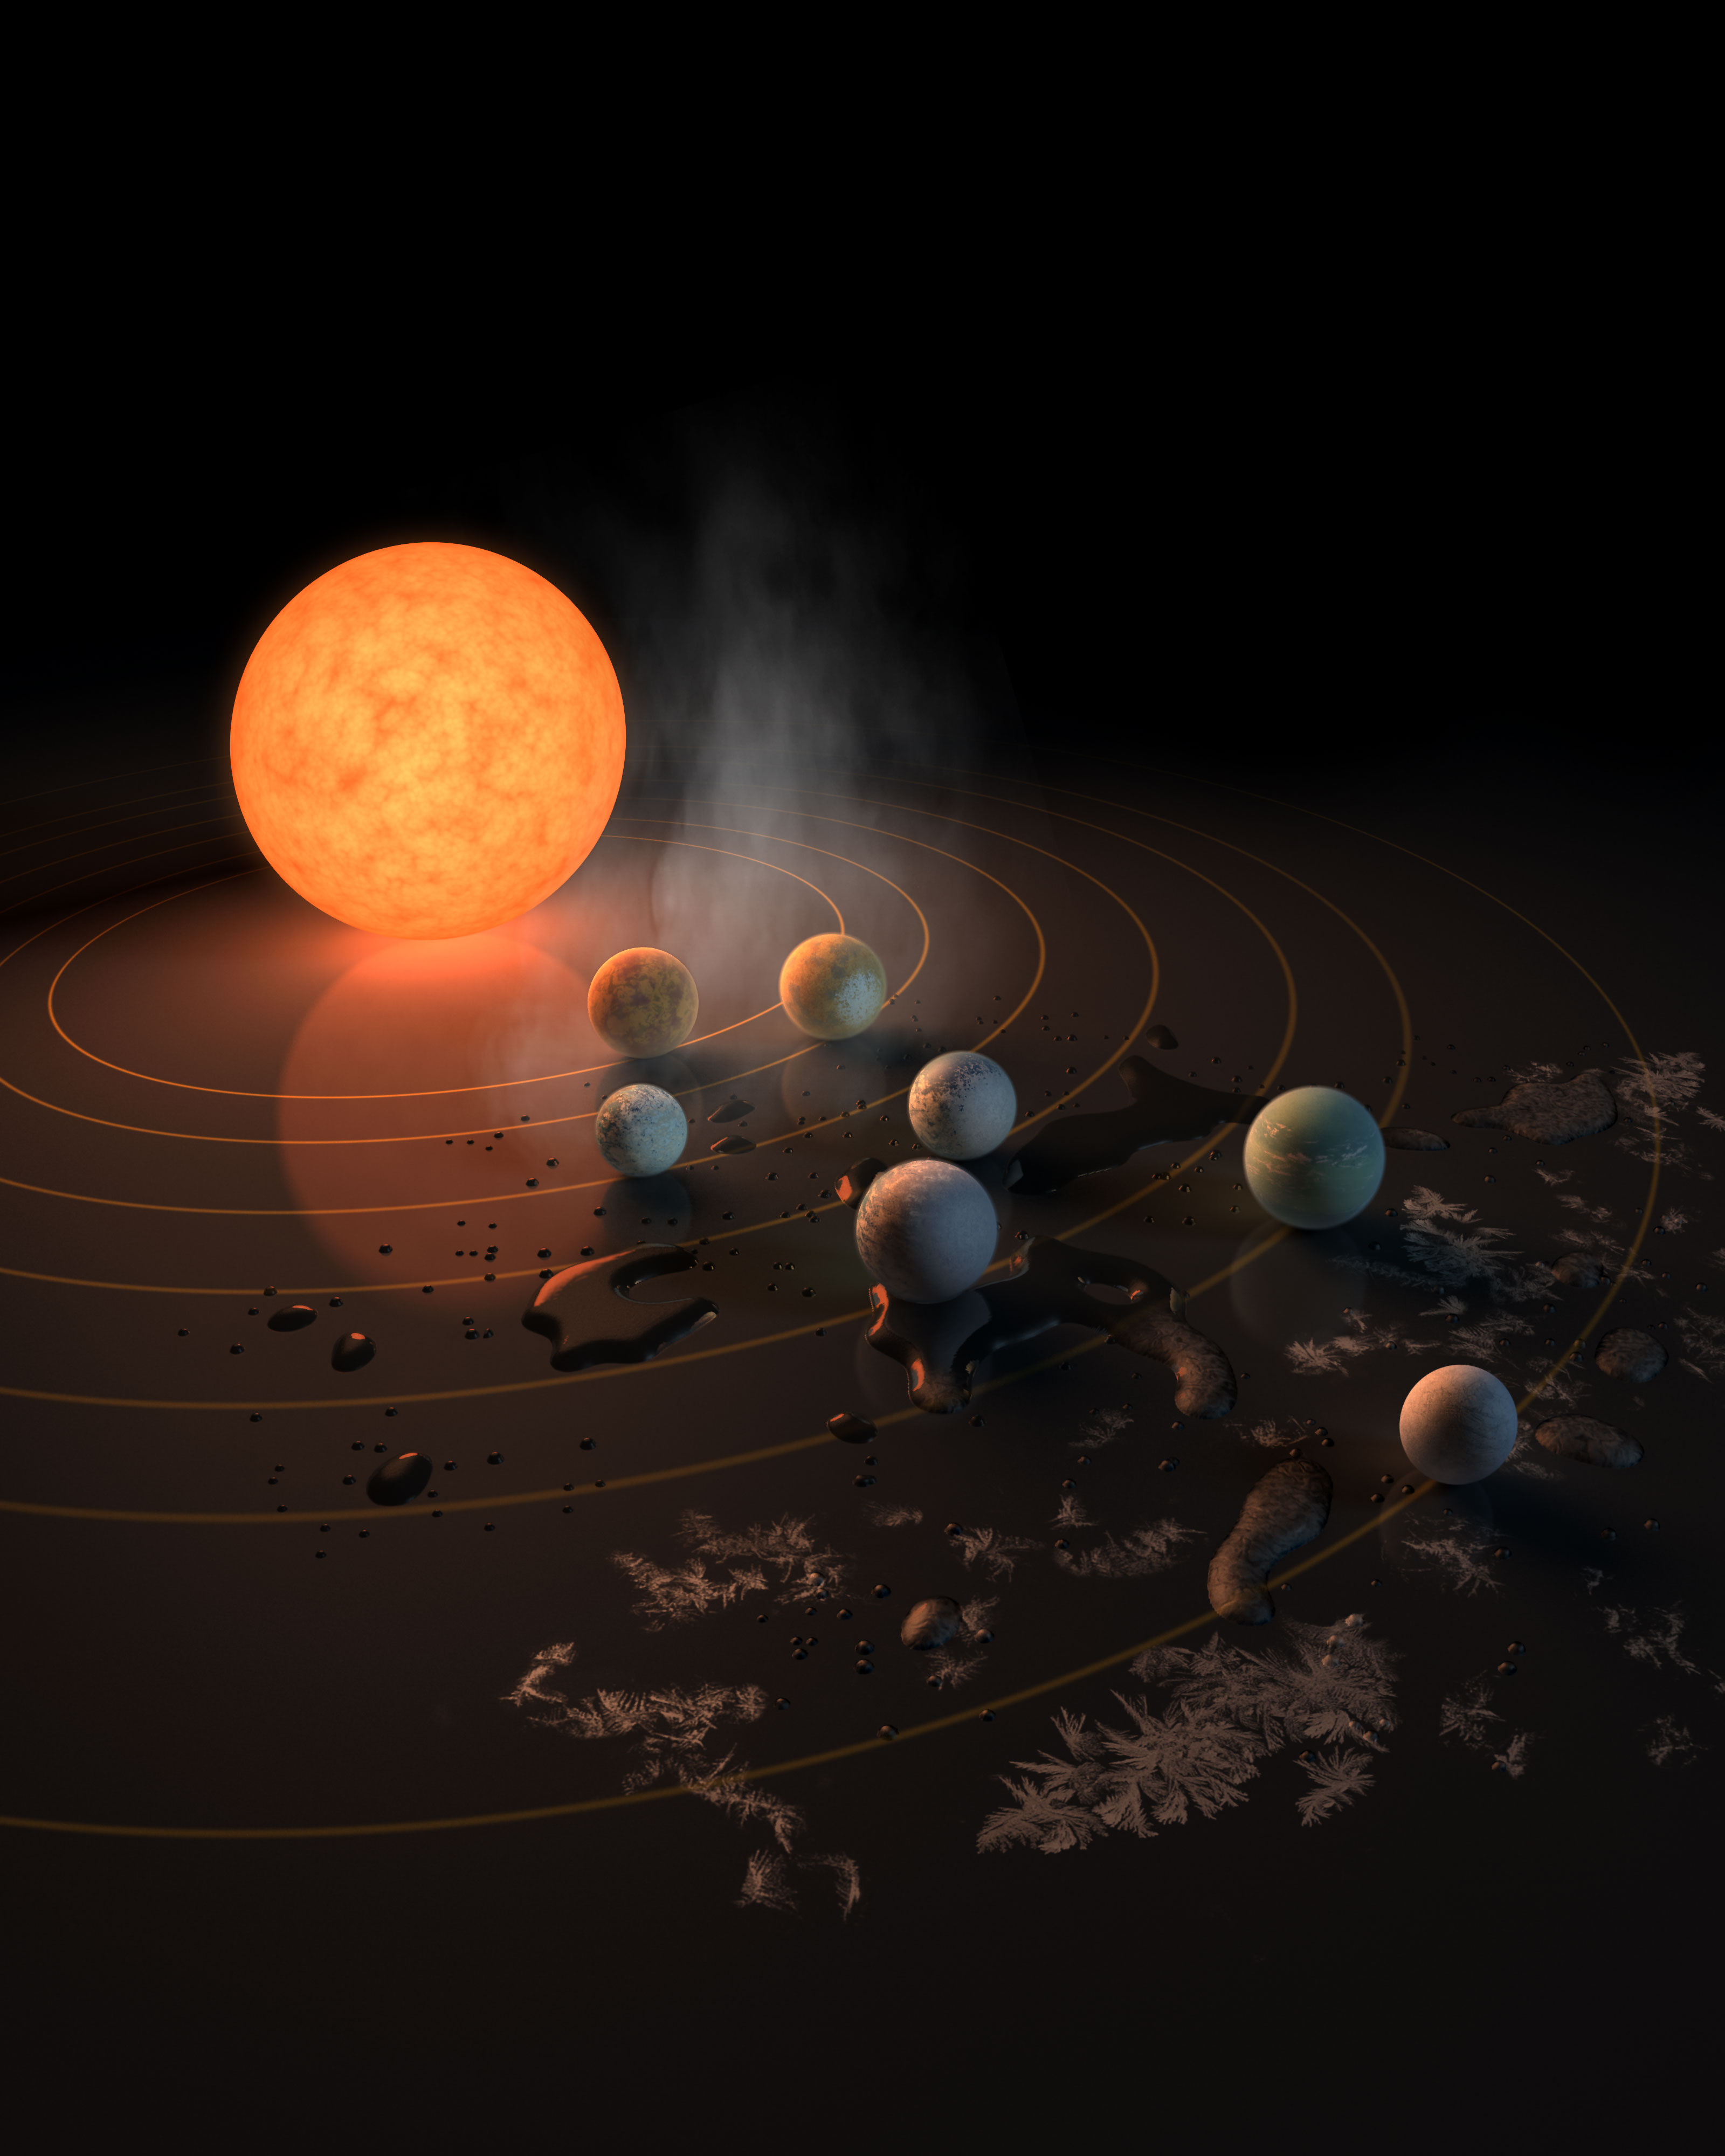 The TRAPPIST-1 star, an ultra-cool dwarf, has seven Earth-size planets orbiting it. This artist's concept appeared on the cover of the journal Nature on Feb. 23, 2017.